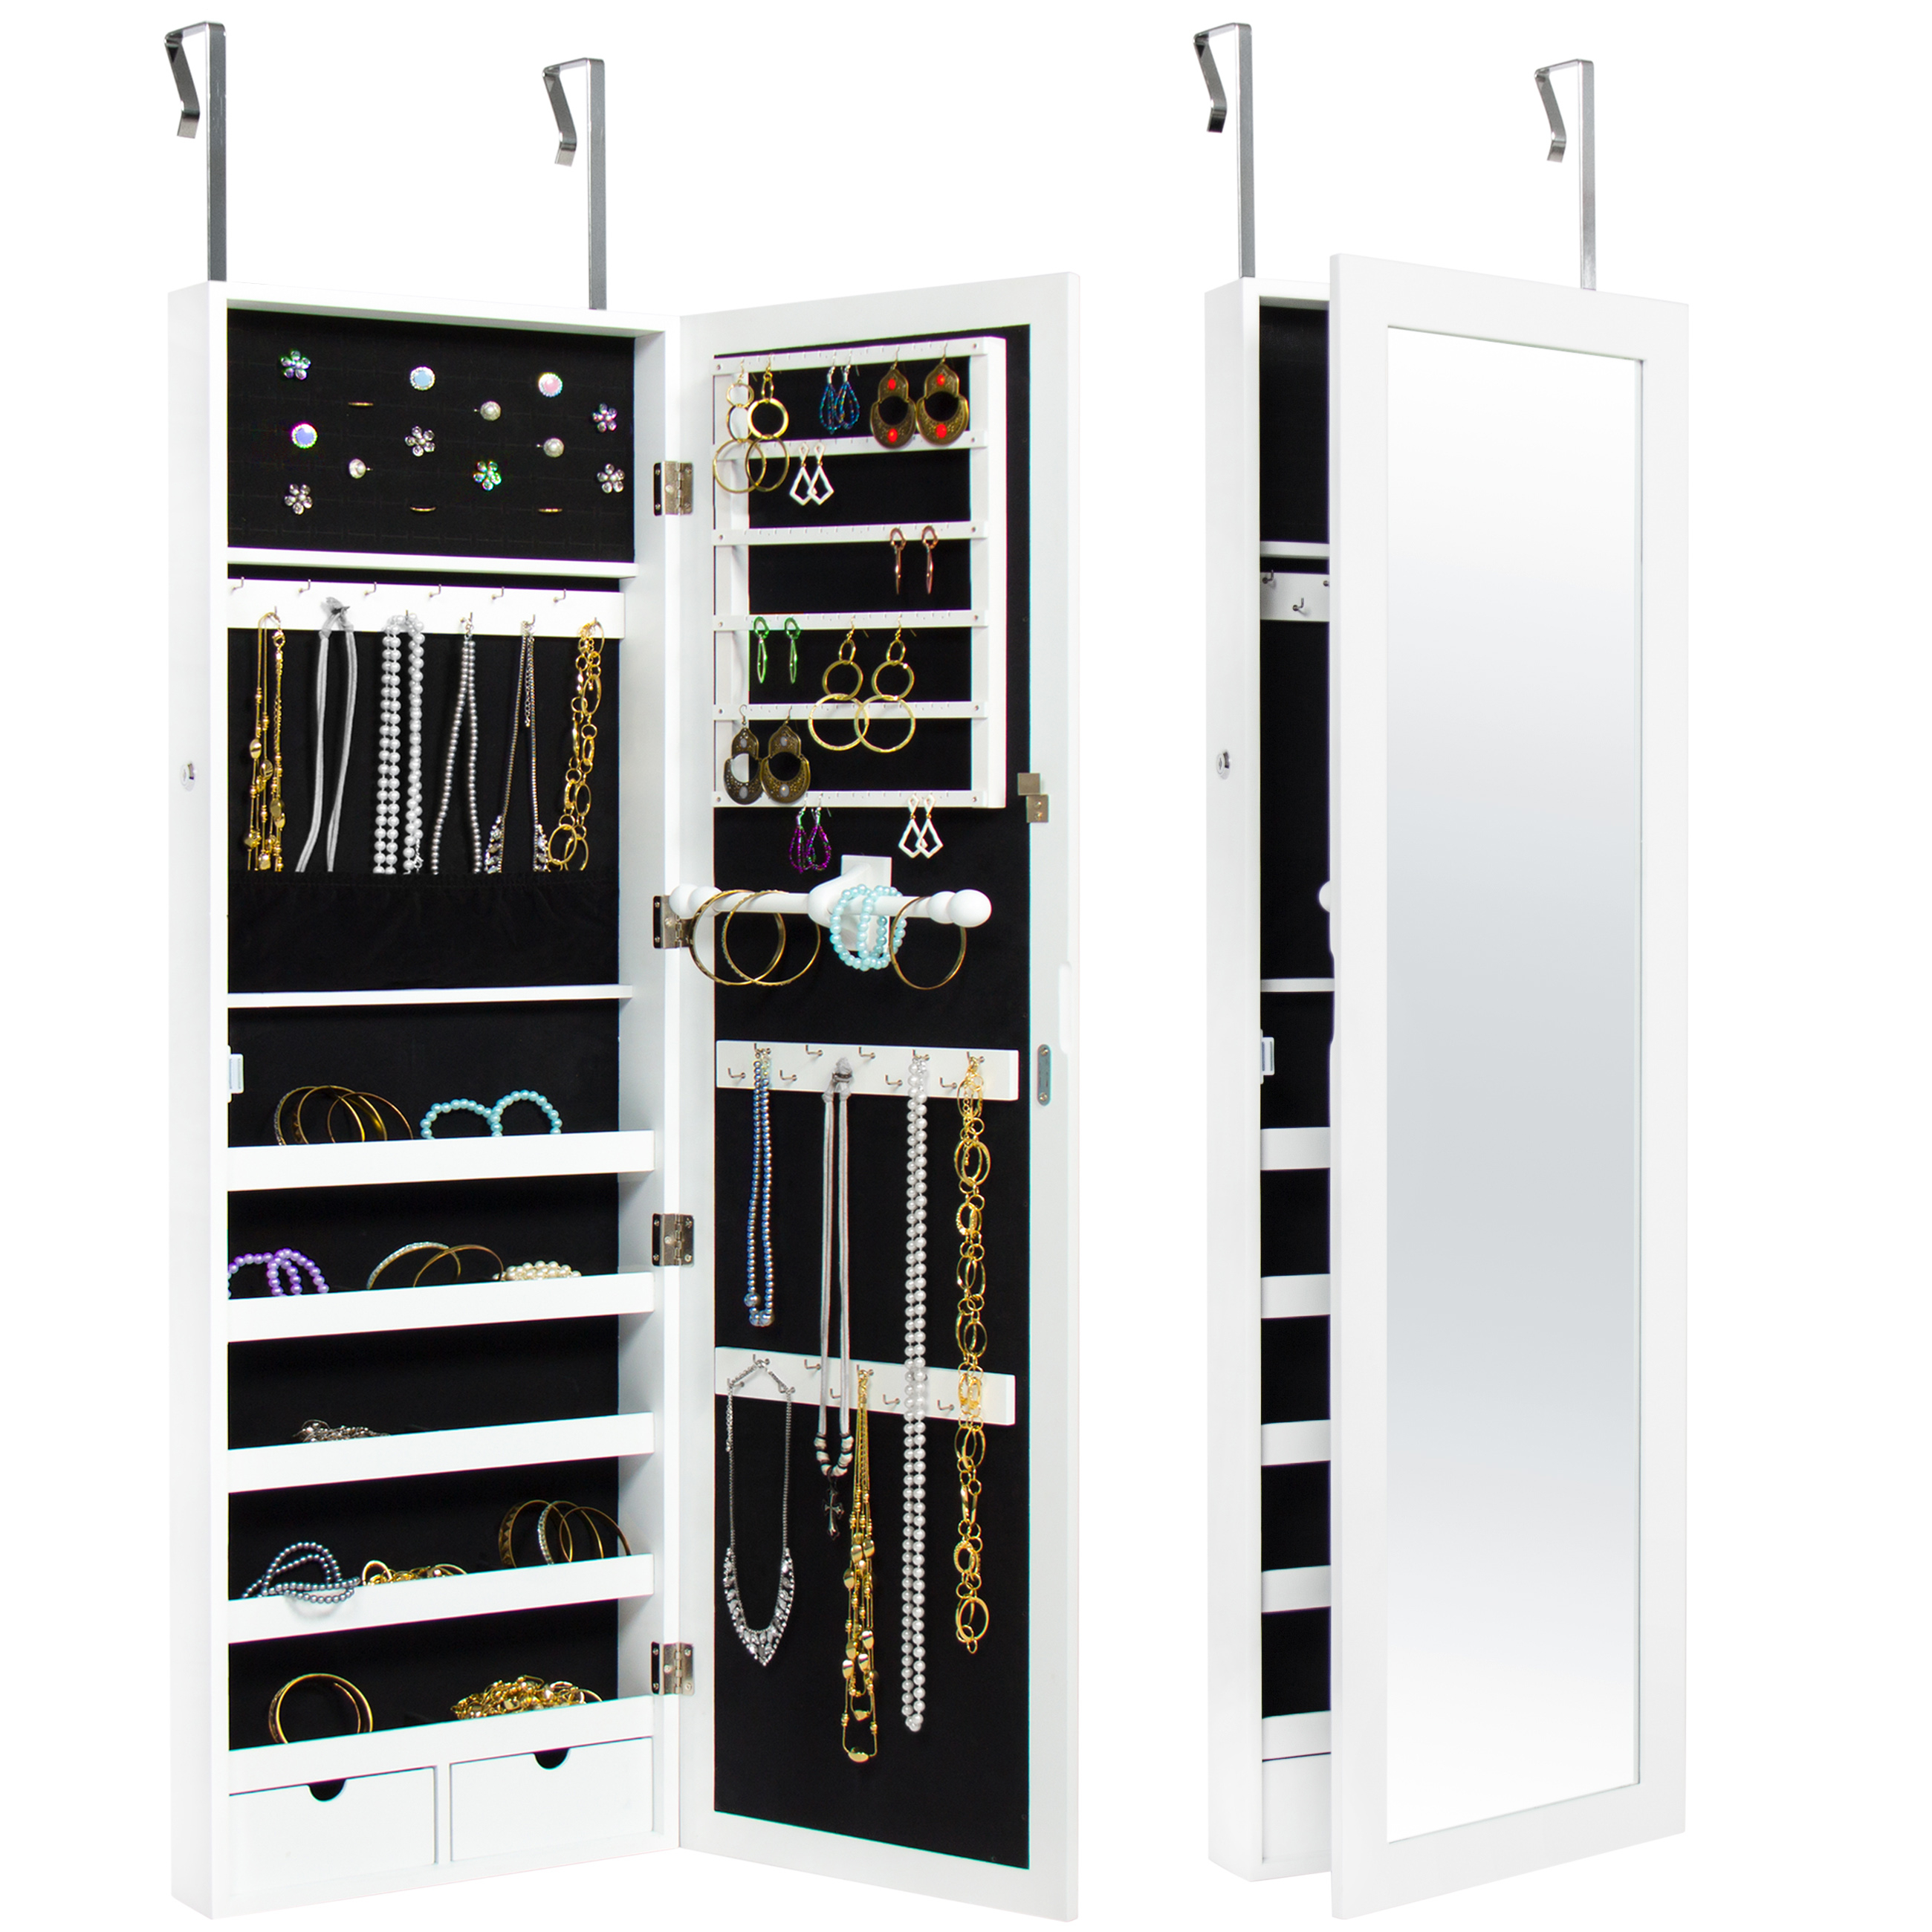 Famous Best Choice Products Mirrored Hanging Jewelry Cabinet Armoire Organizer  Over Door Wall Mount W/ Keys  White Within Jewelry Wall Mirrors (View 2 of 20)